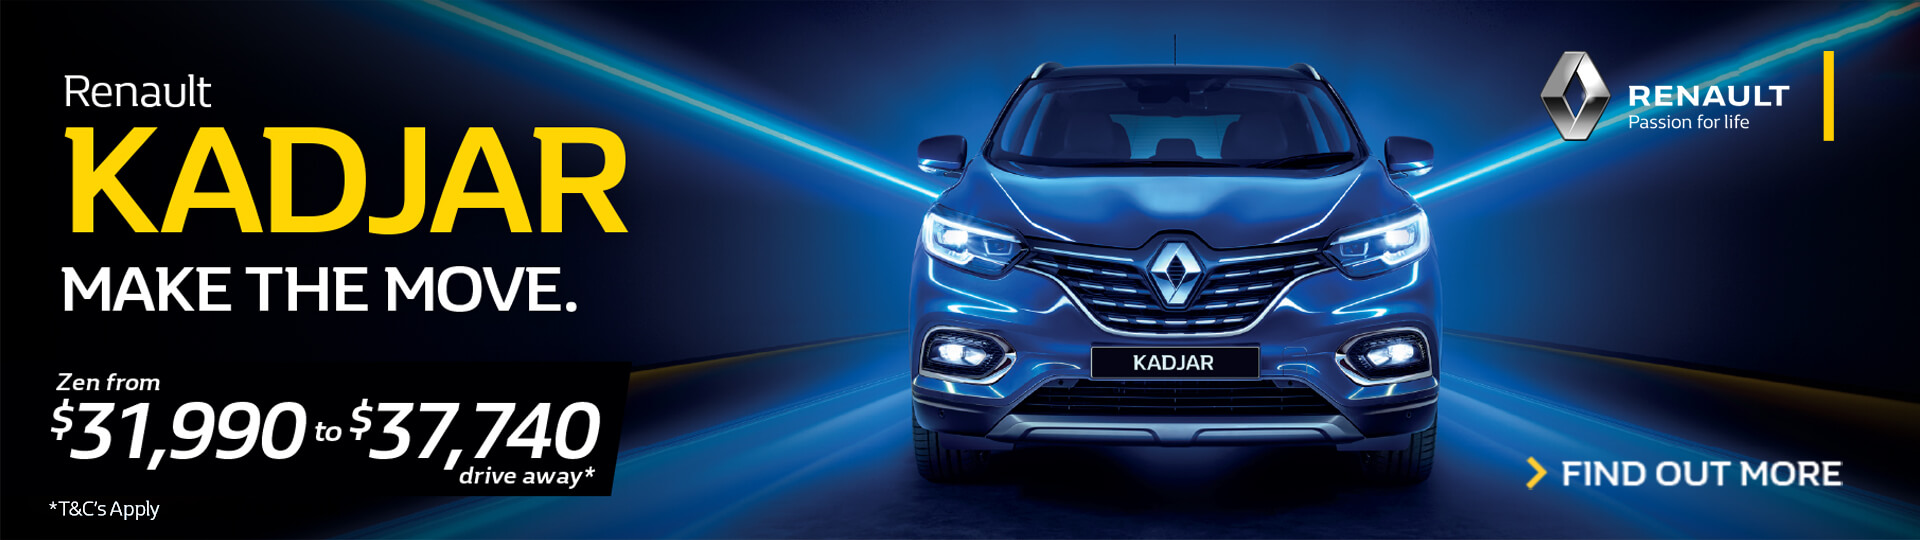 Renault Kadjar - Make the Move